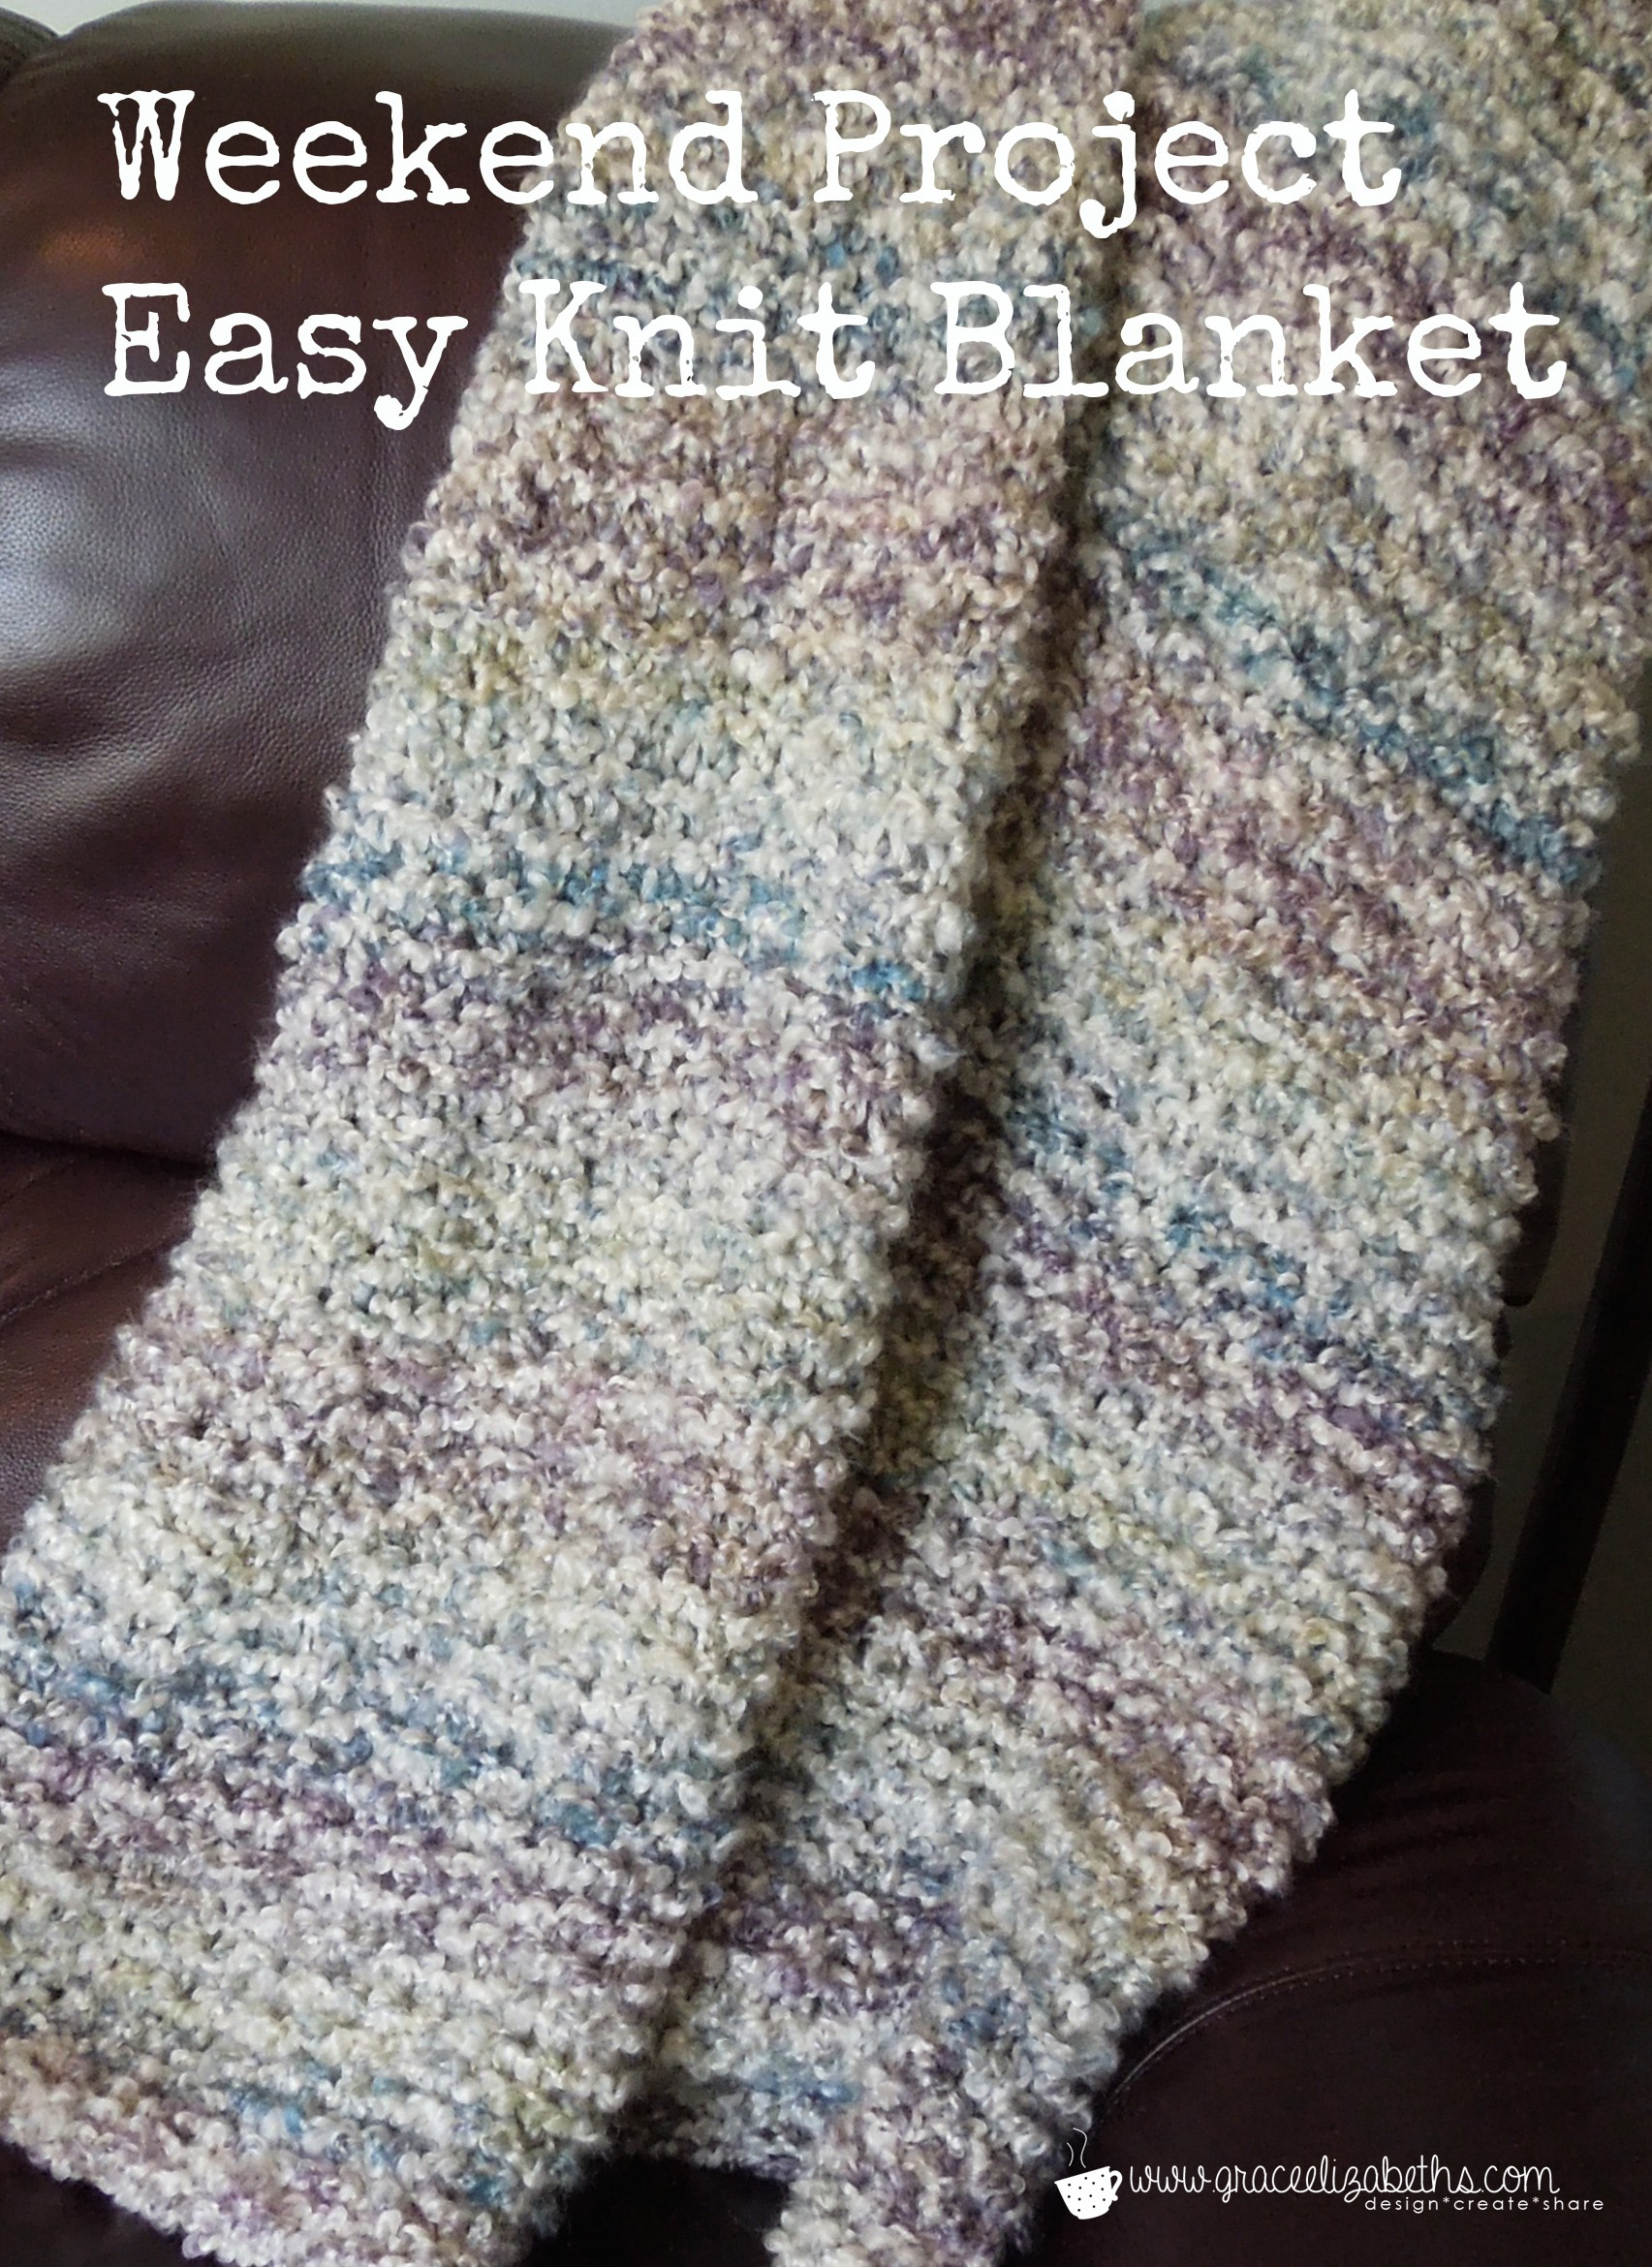 Afghan Knitting Patterns Easy : Weekend Project: Free Easy Knit Blanket Pattern - Grace ...